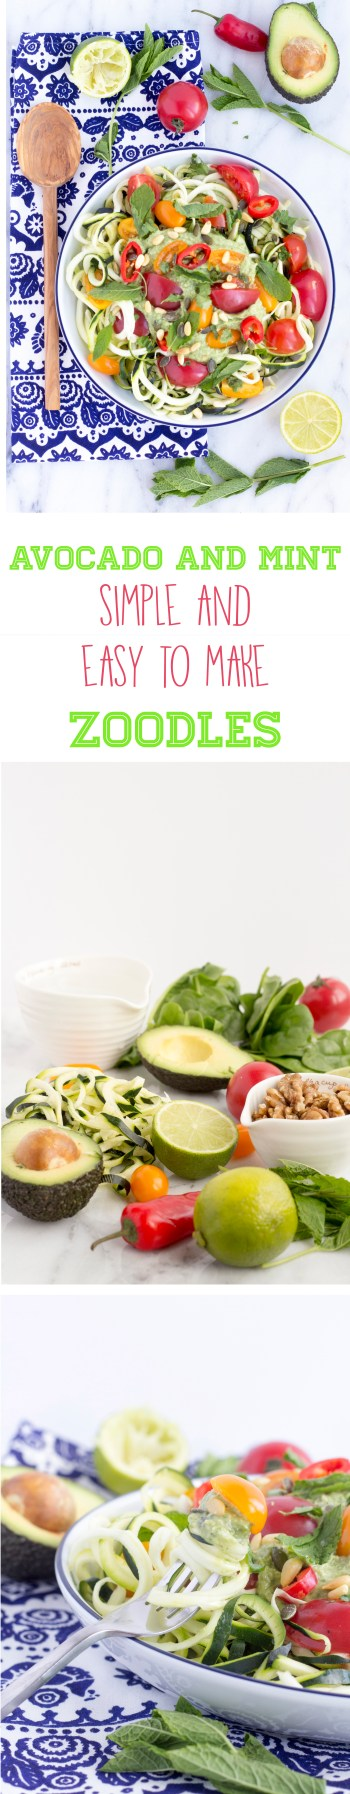 Healthy and  Simple raw zoodles a great alternative to pasta PINTEREST 1